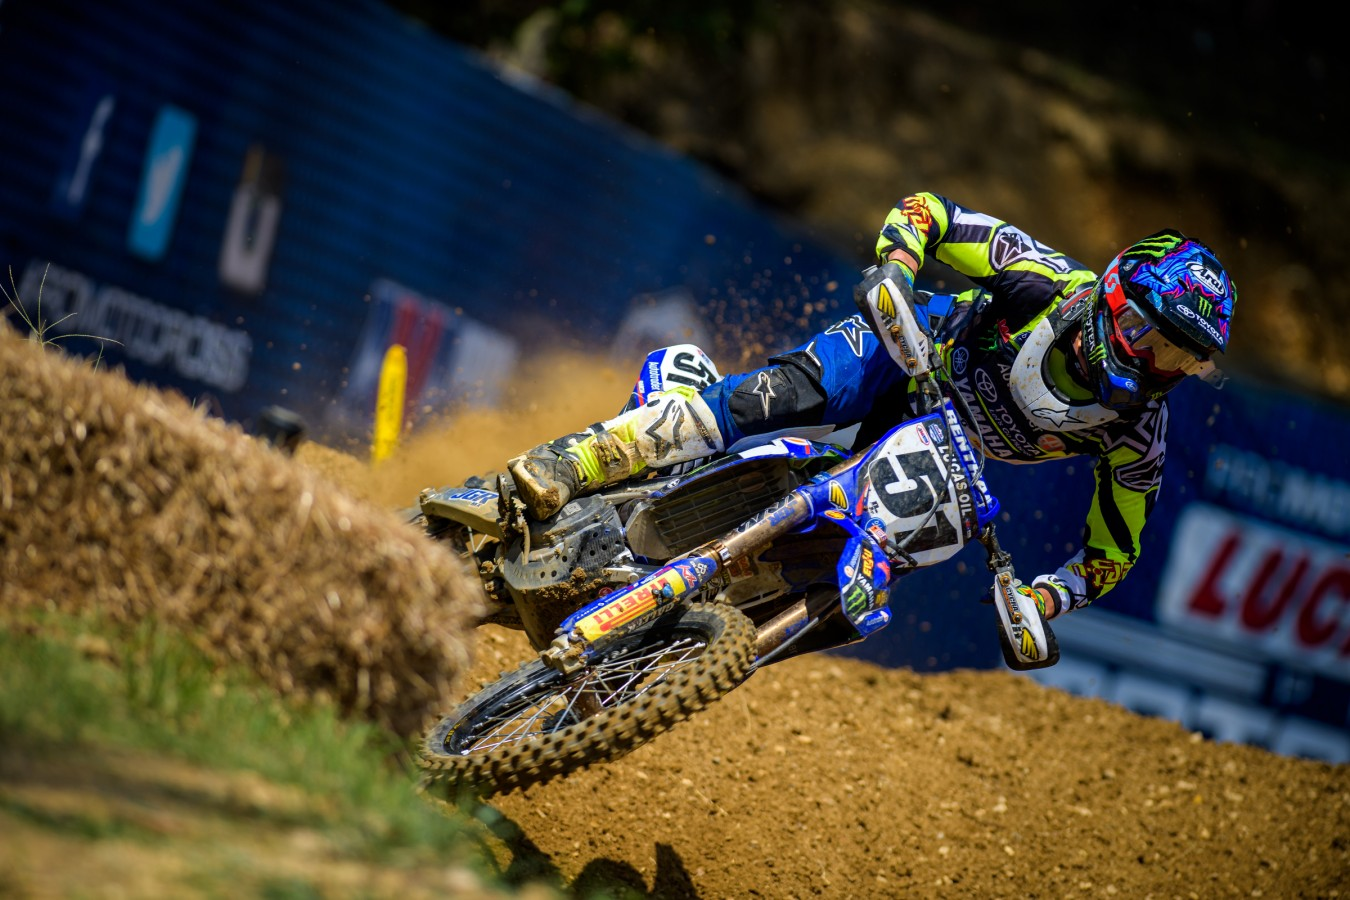 Justin Barcia during the 2016 Pro MX Nationals in Budds Creek Raceway - Mechanicsville, MD